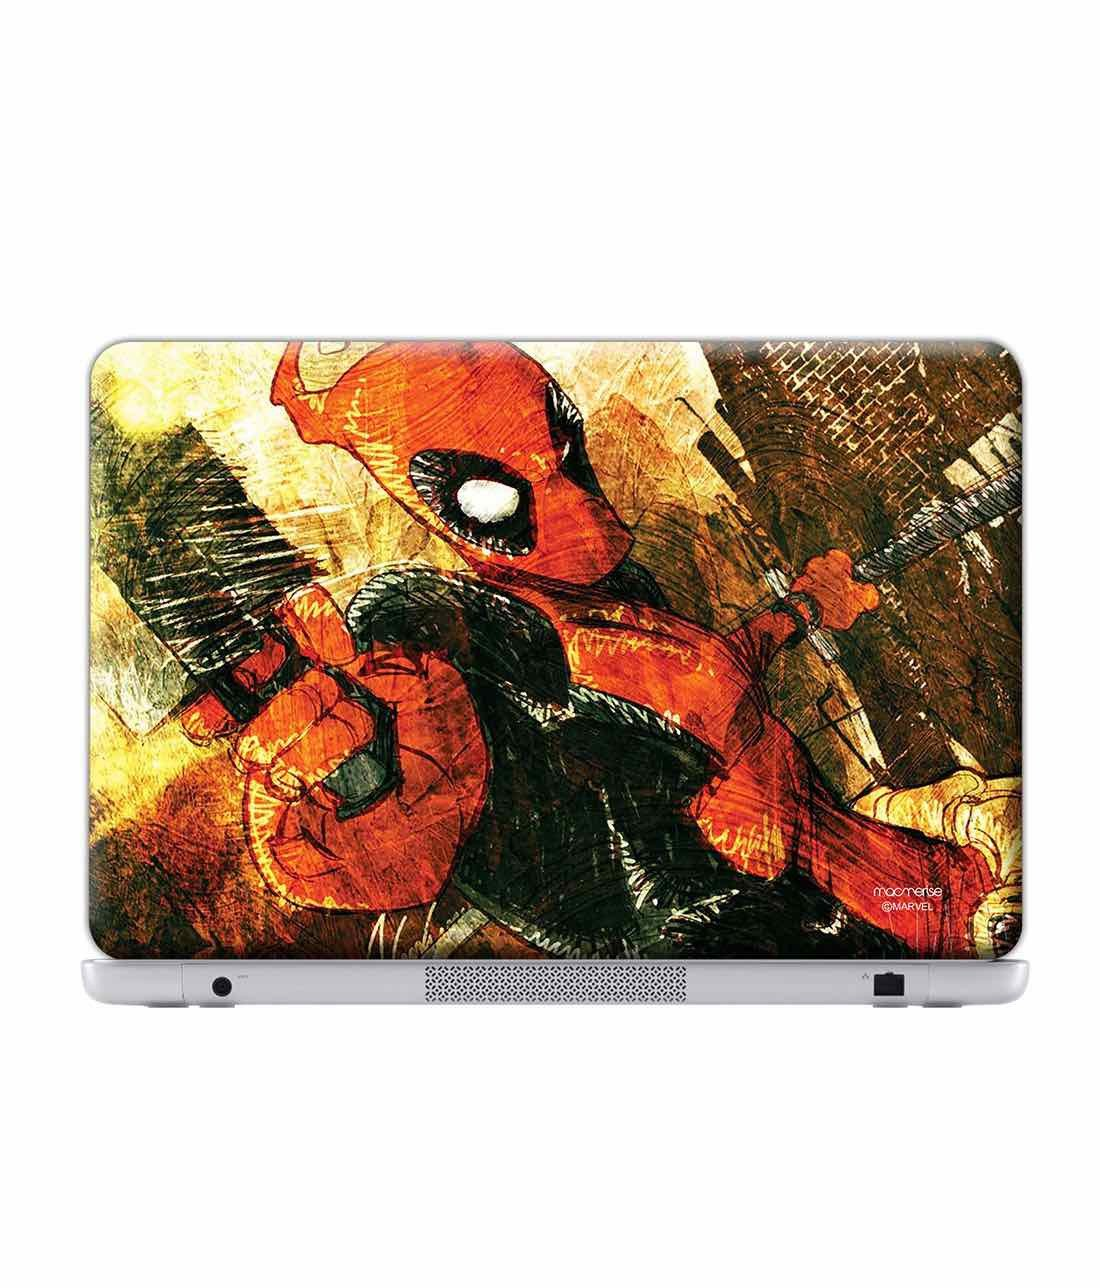 Deadpool Attack Laptop Skin by Macmerise -Macmerise - India - www.superherotoystore.com